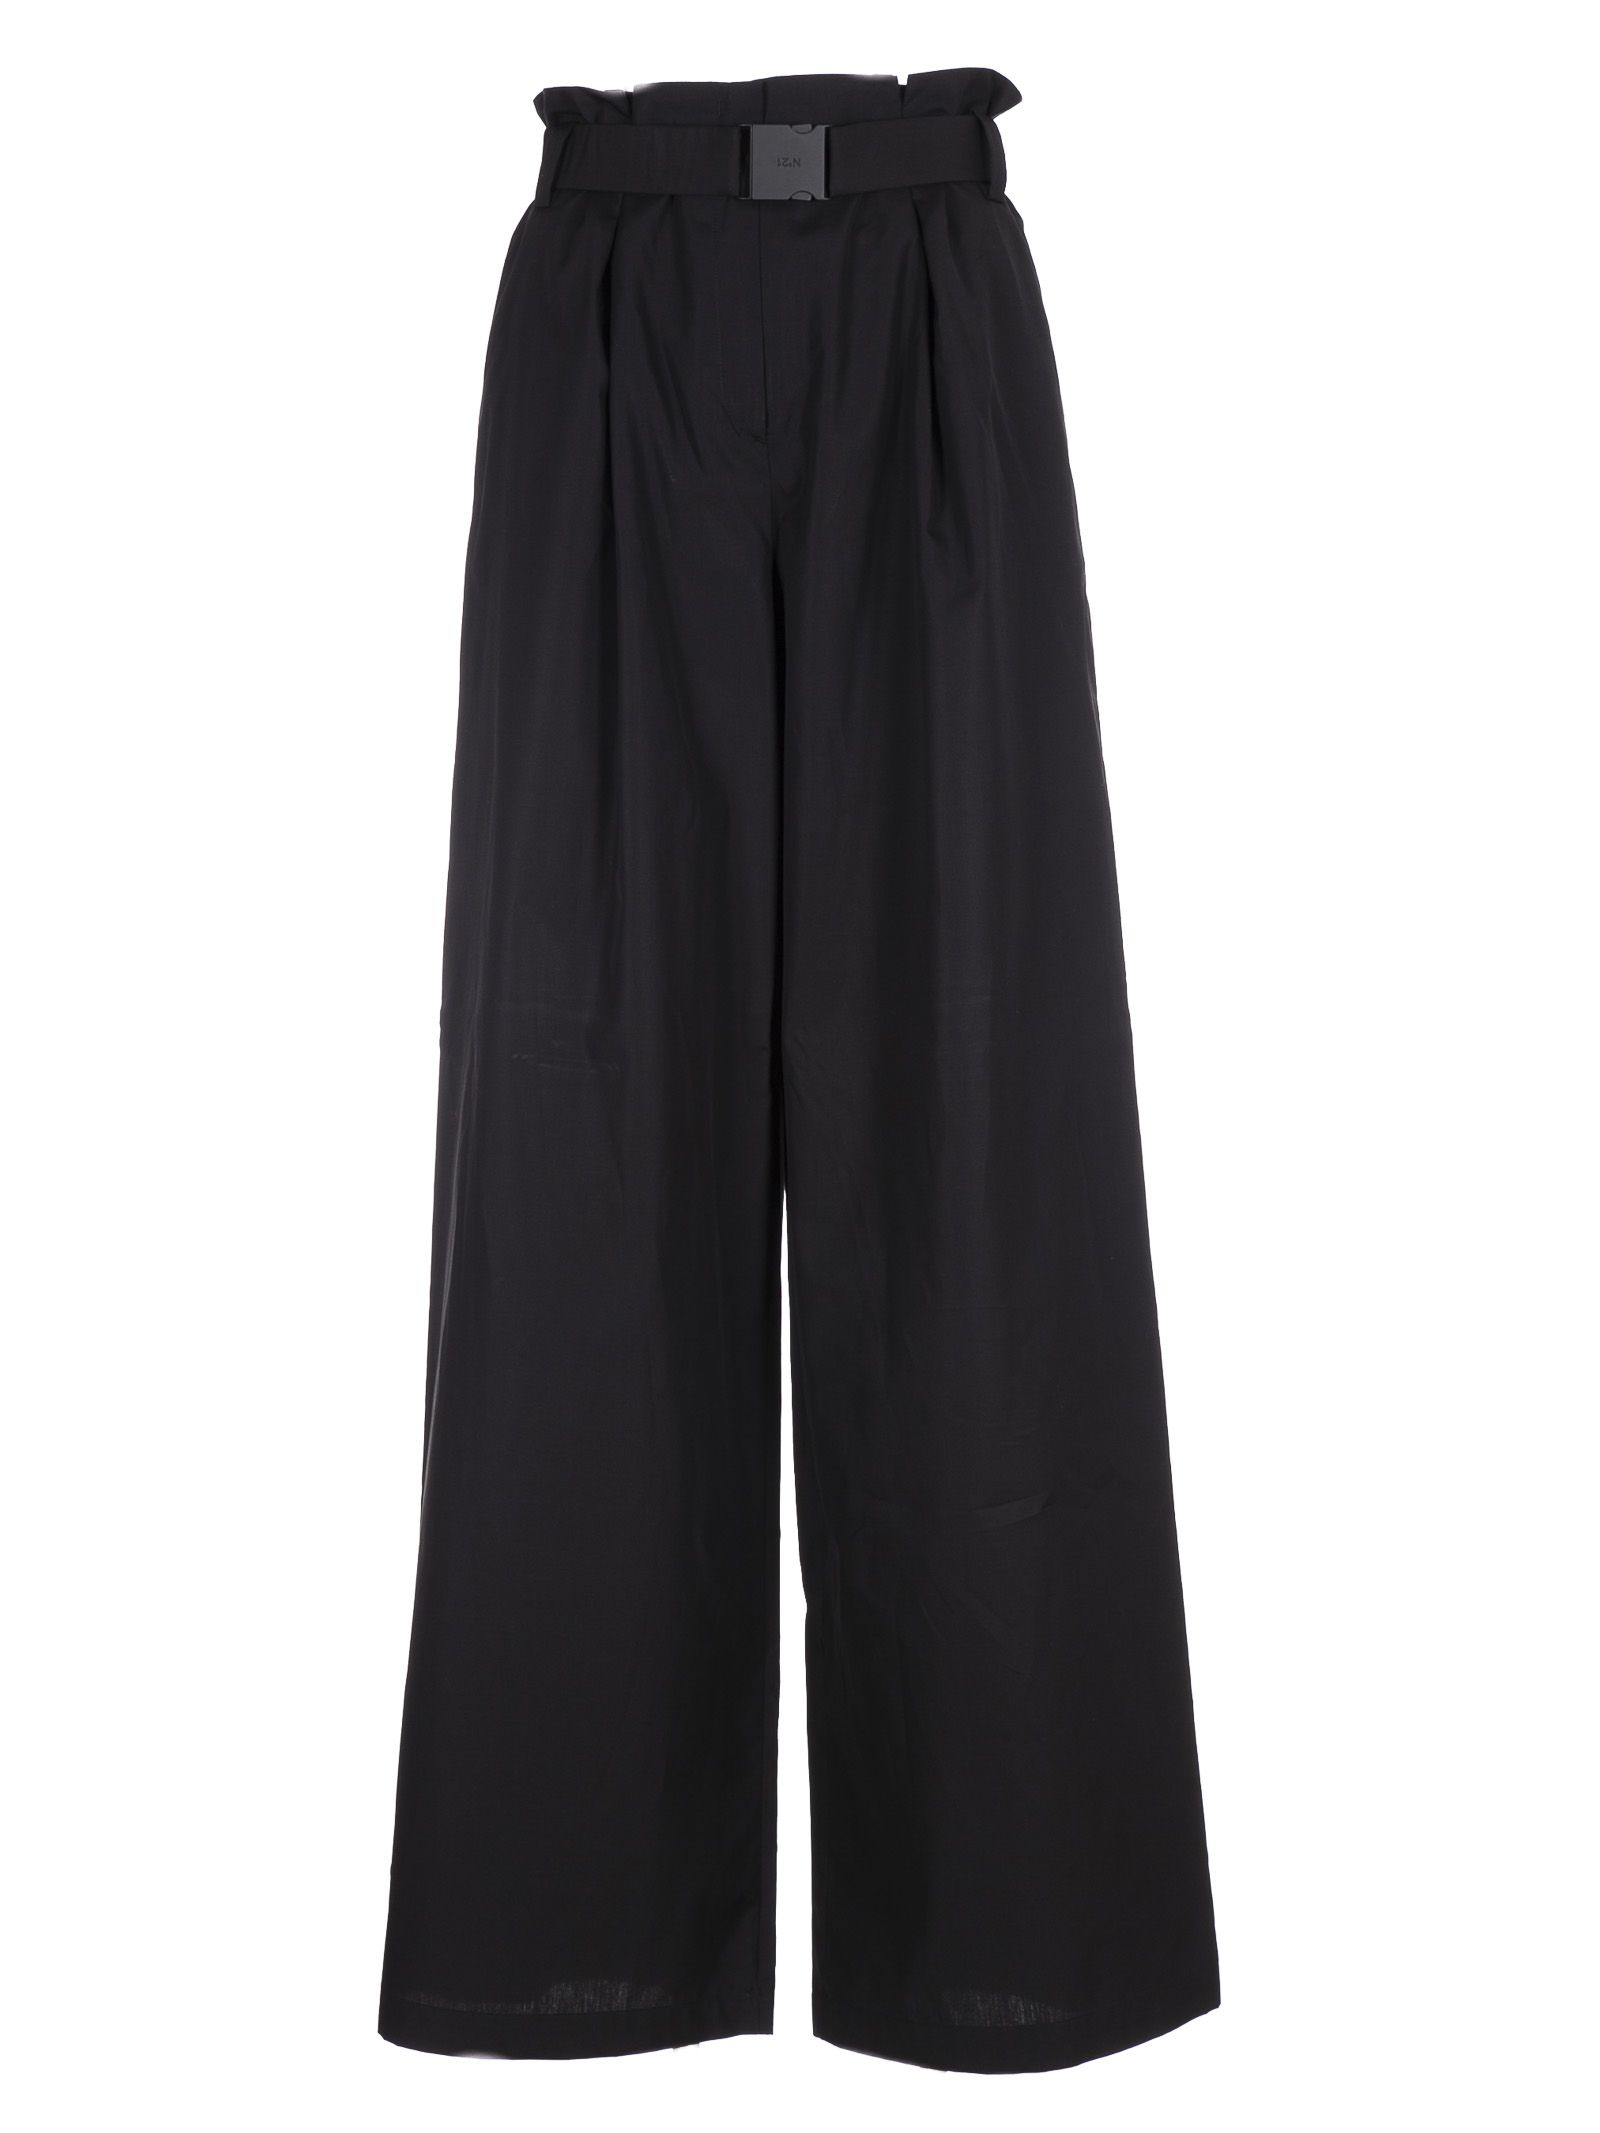 N.21 Belted Trousers